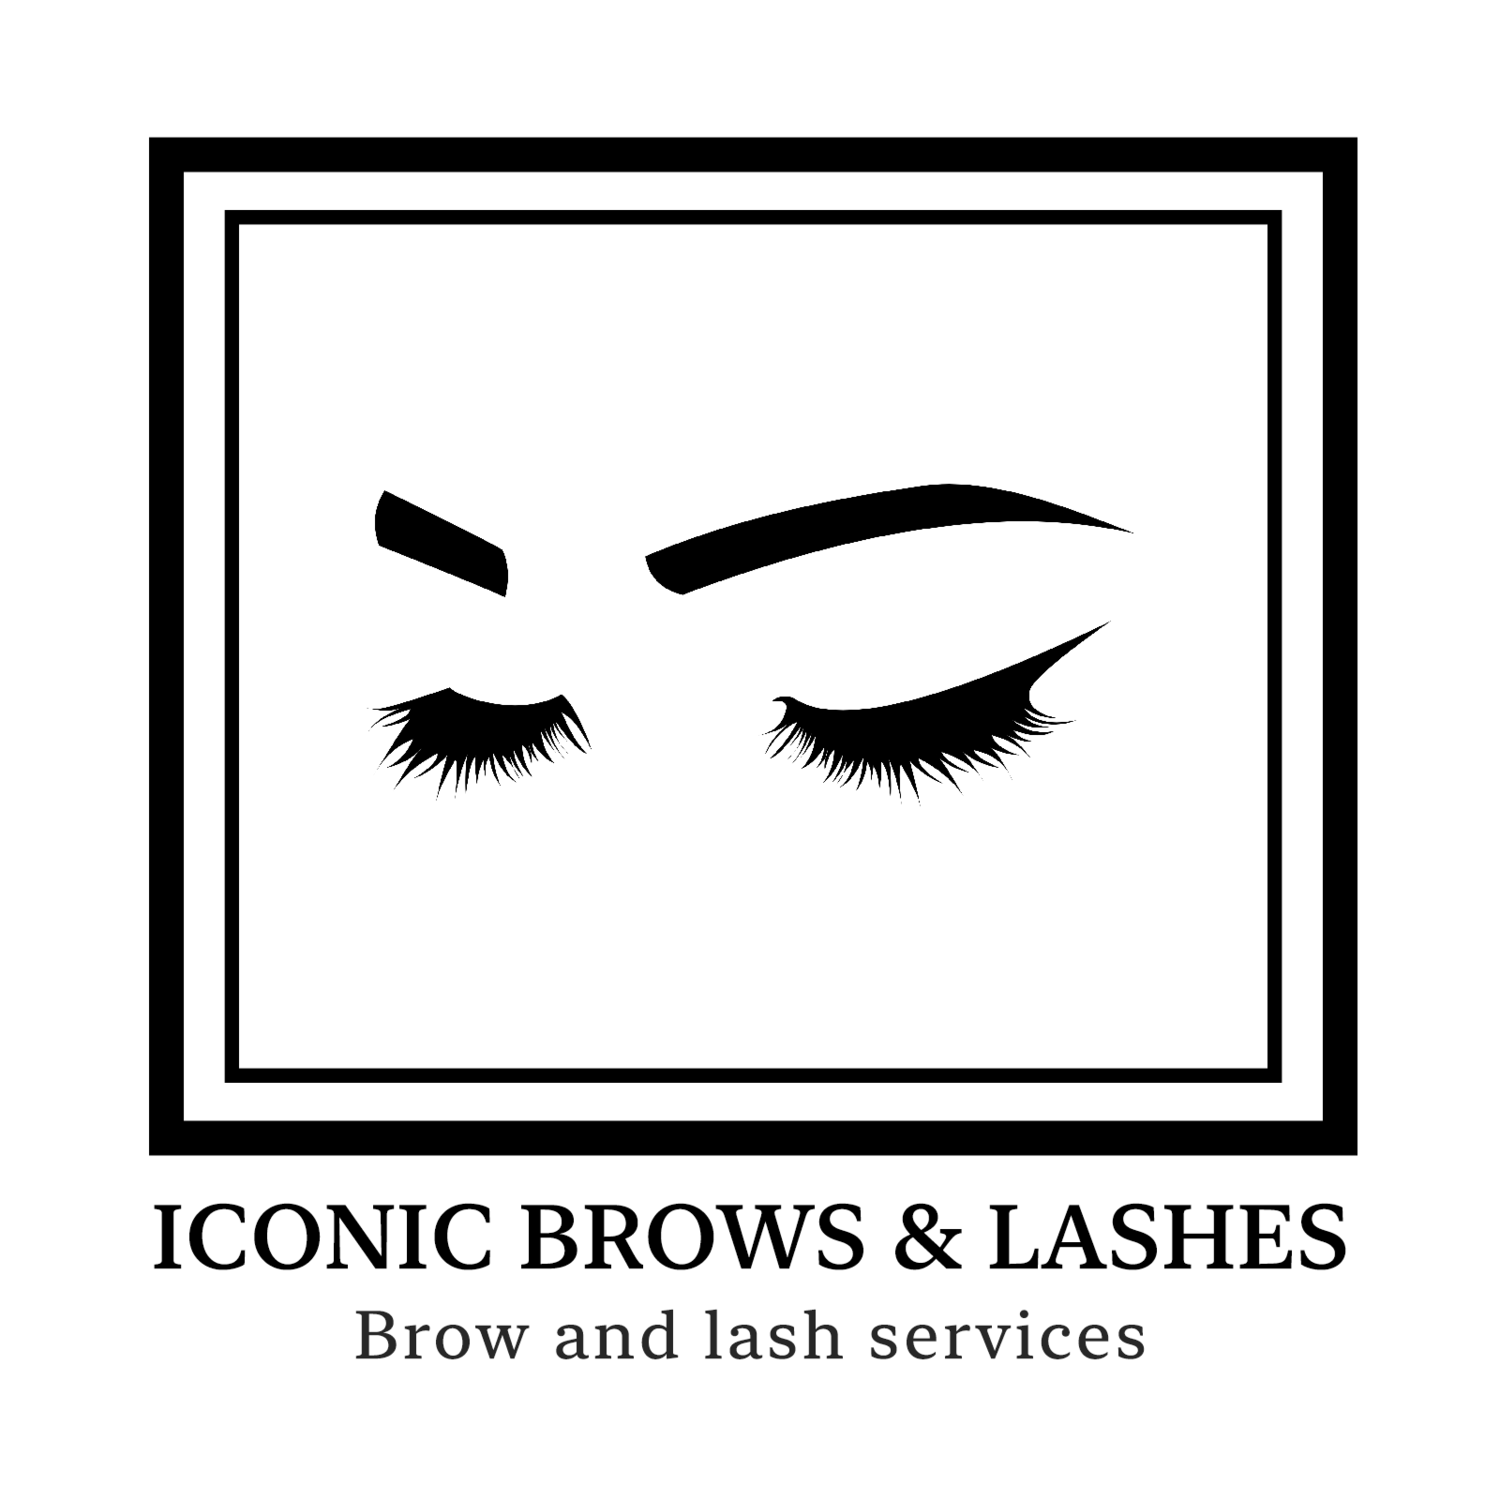 ICONIC BROWS & LASHES